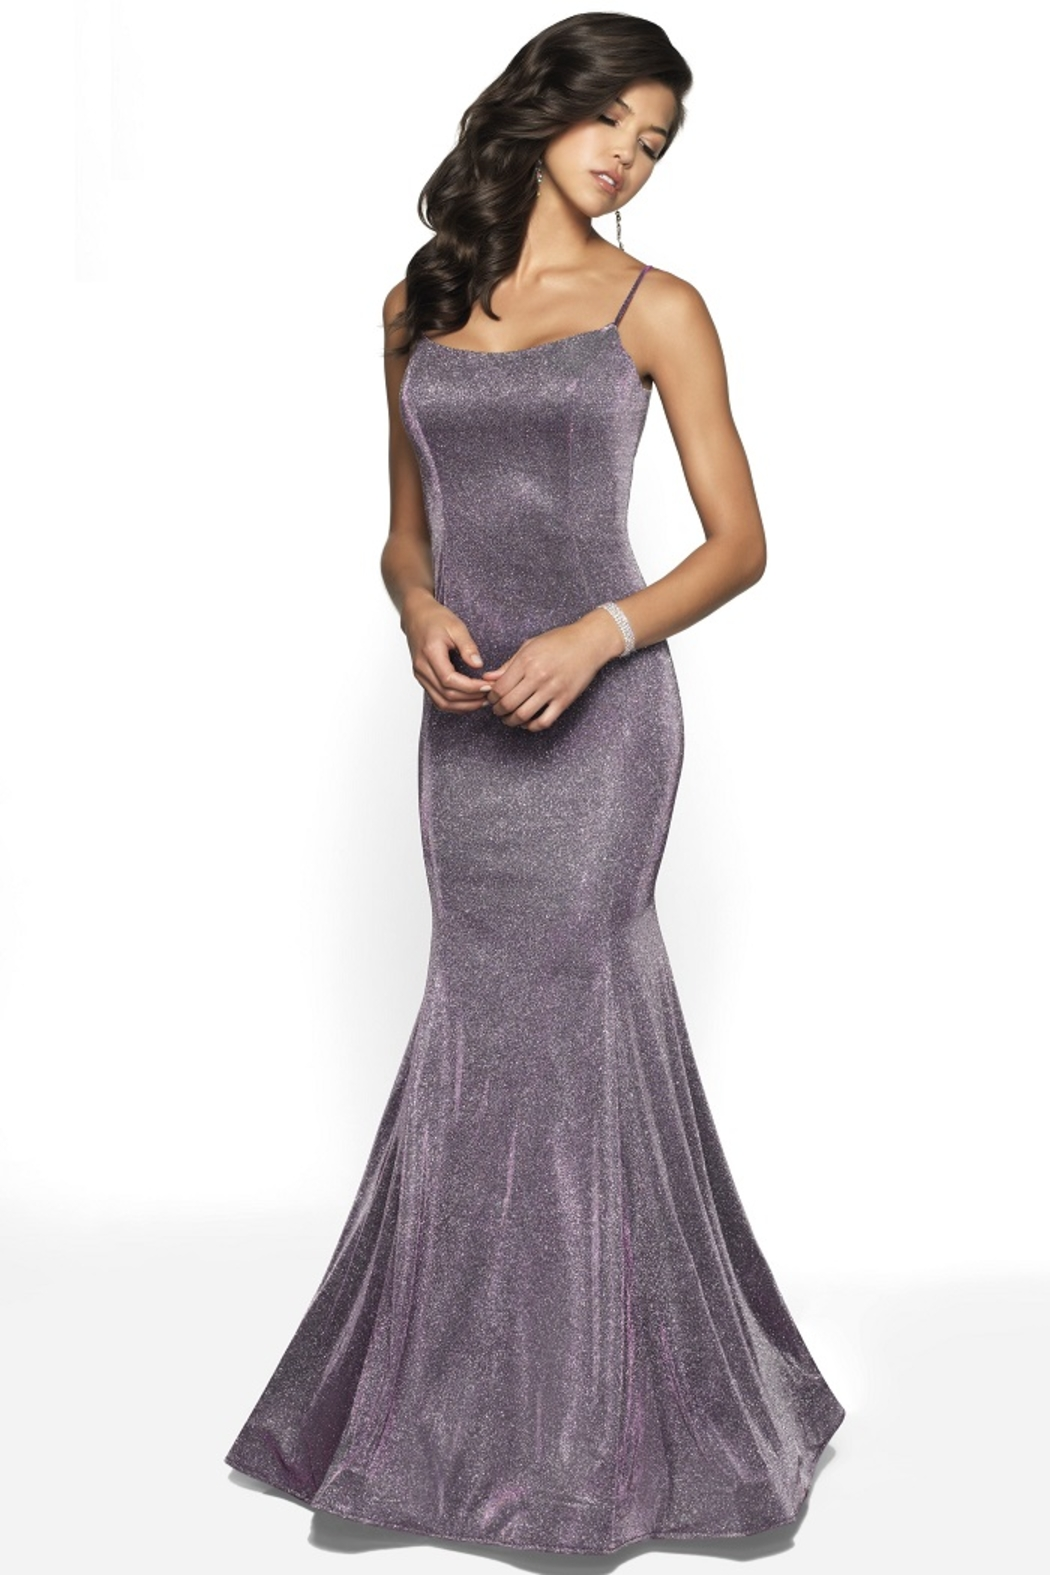 Blush Prom Purple Shimmer Fit & Flare Long Formal Dress - Main Image